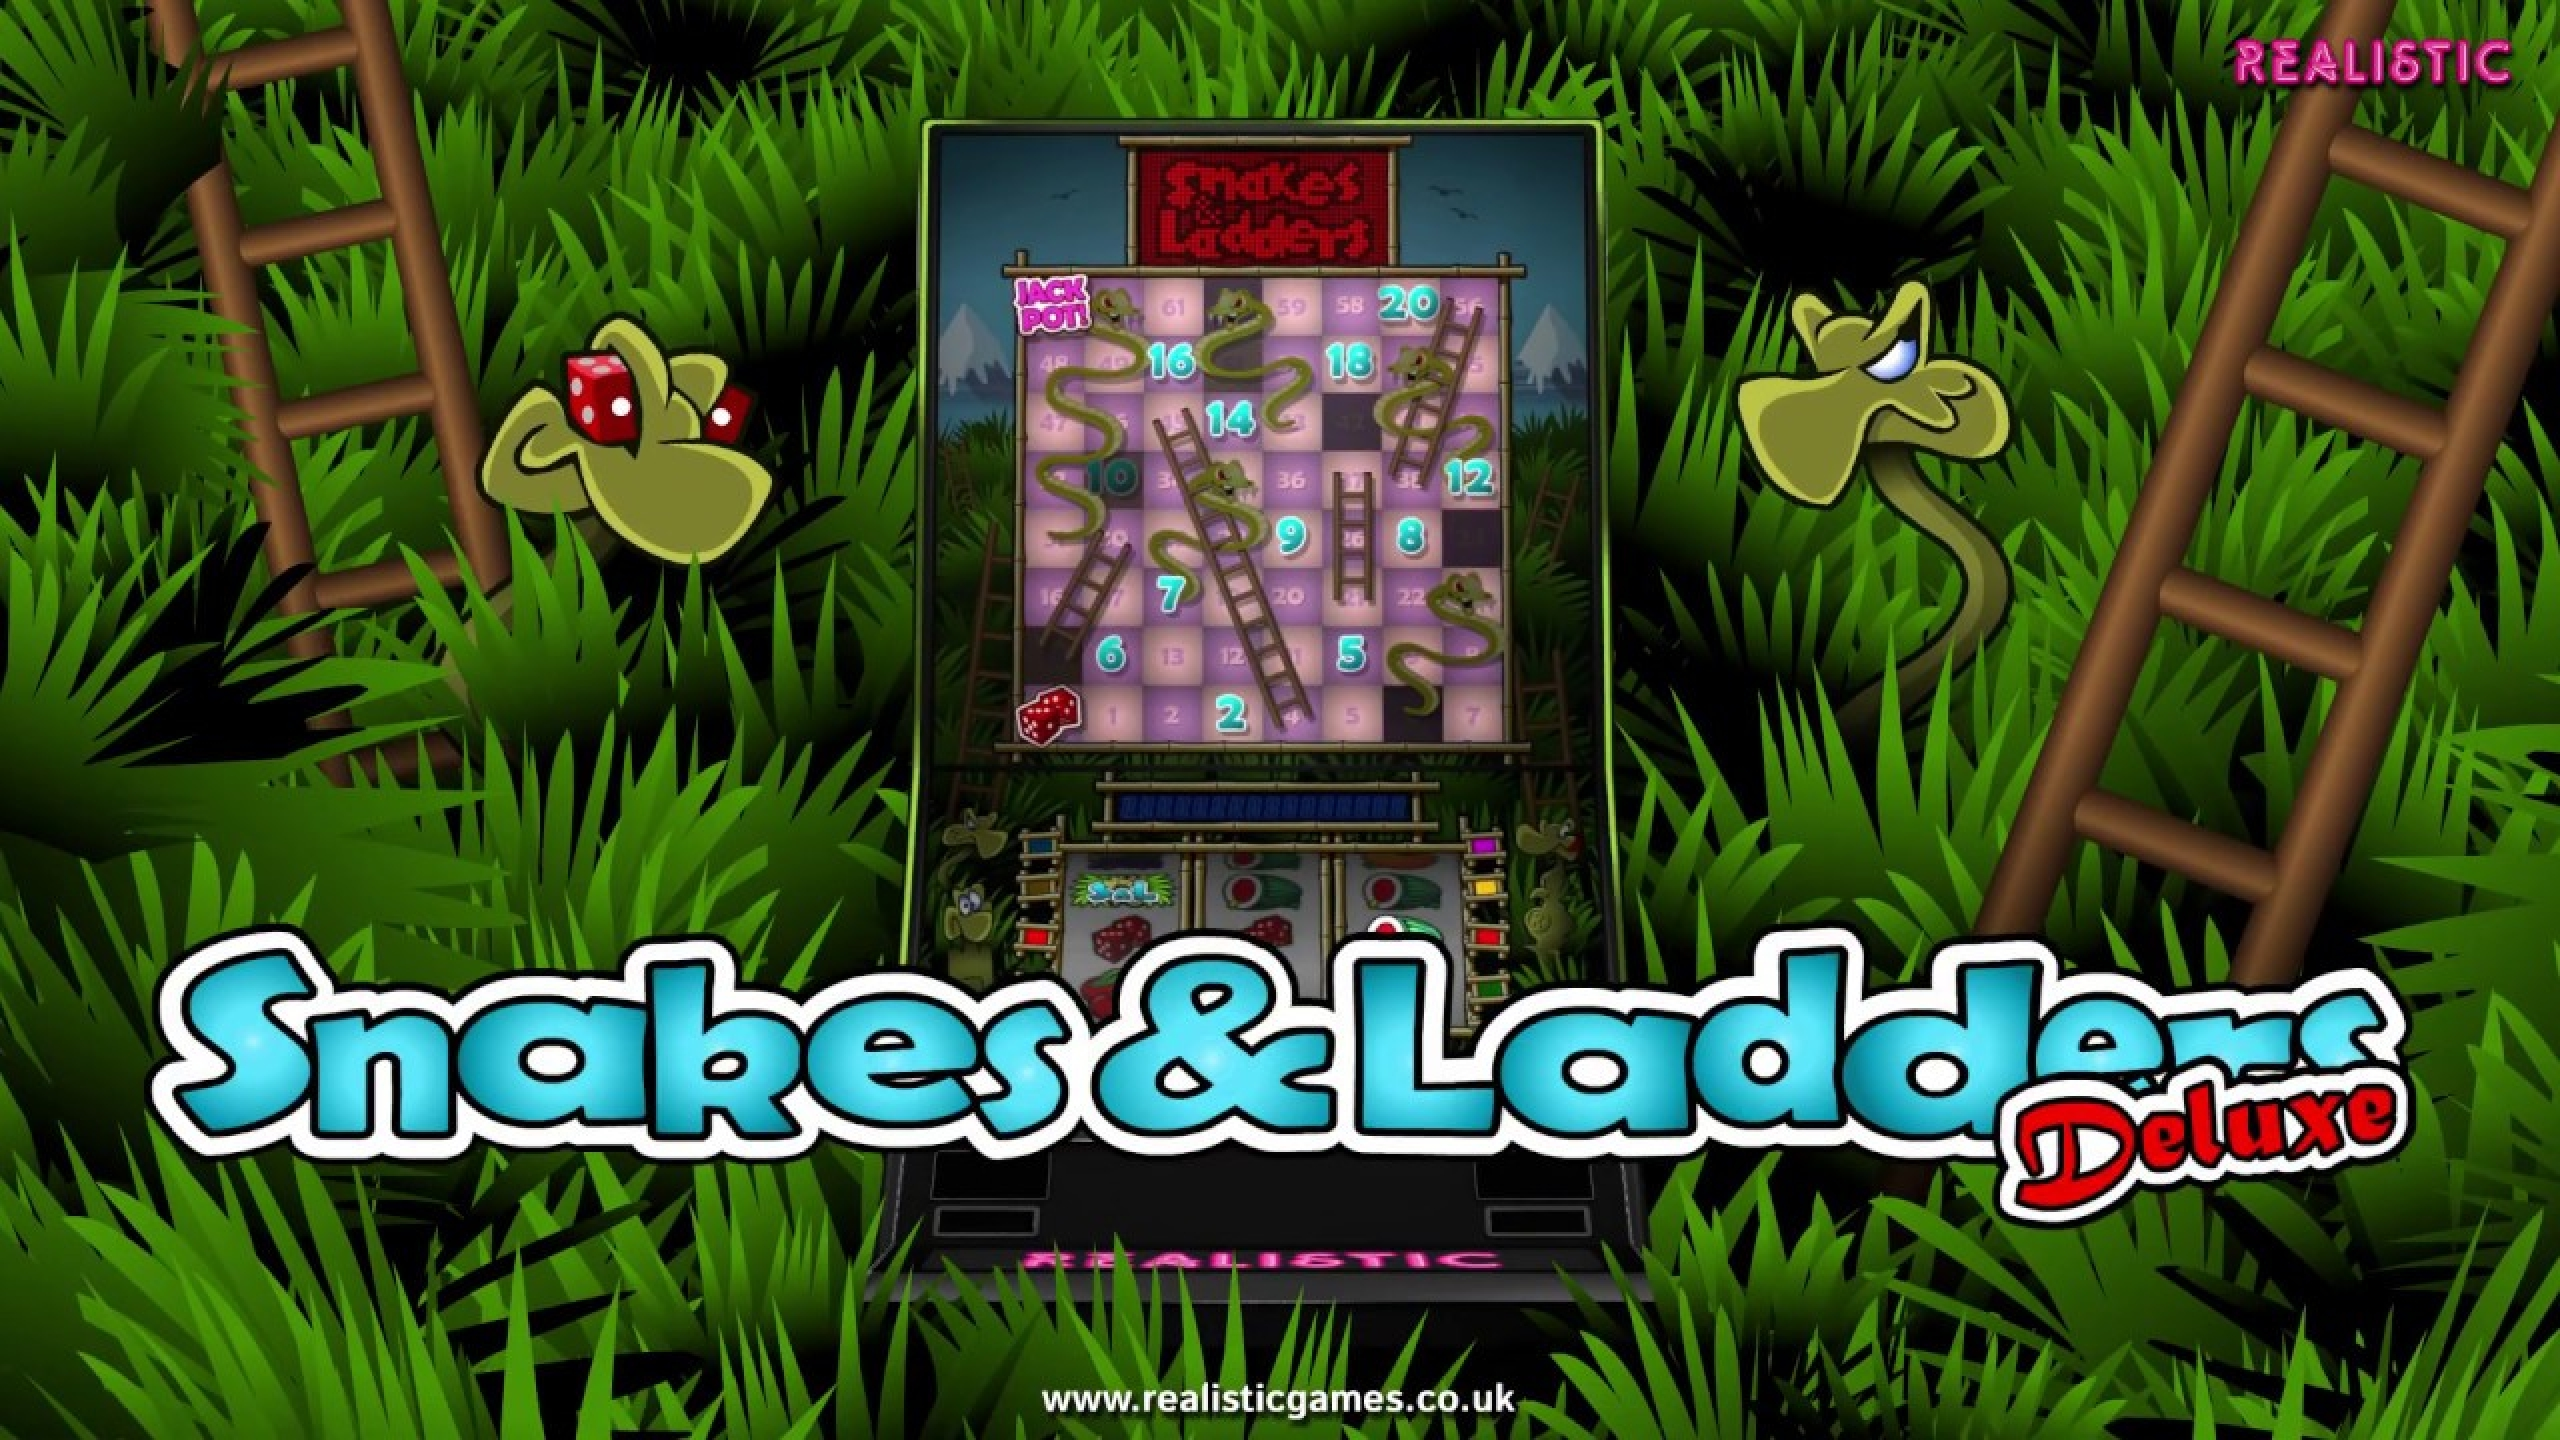 The Snakes & Ladders Deluxe Online Slot Demo Game by Realistic Games